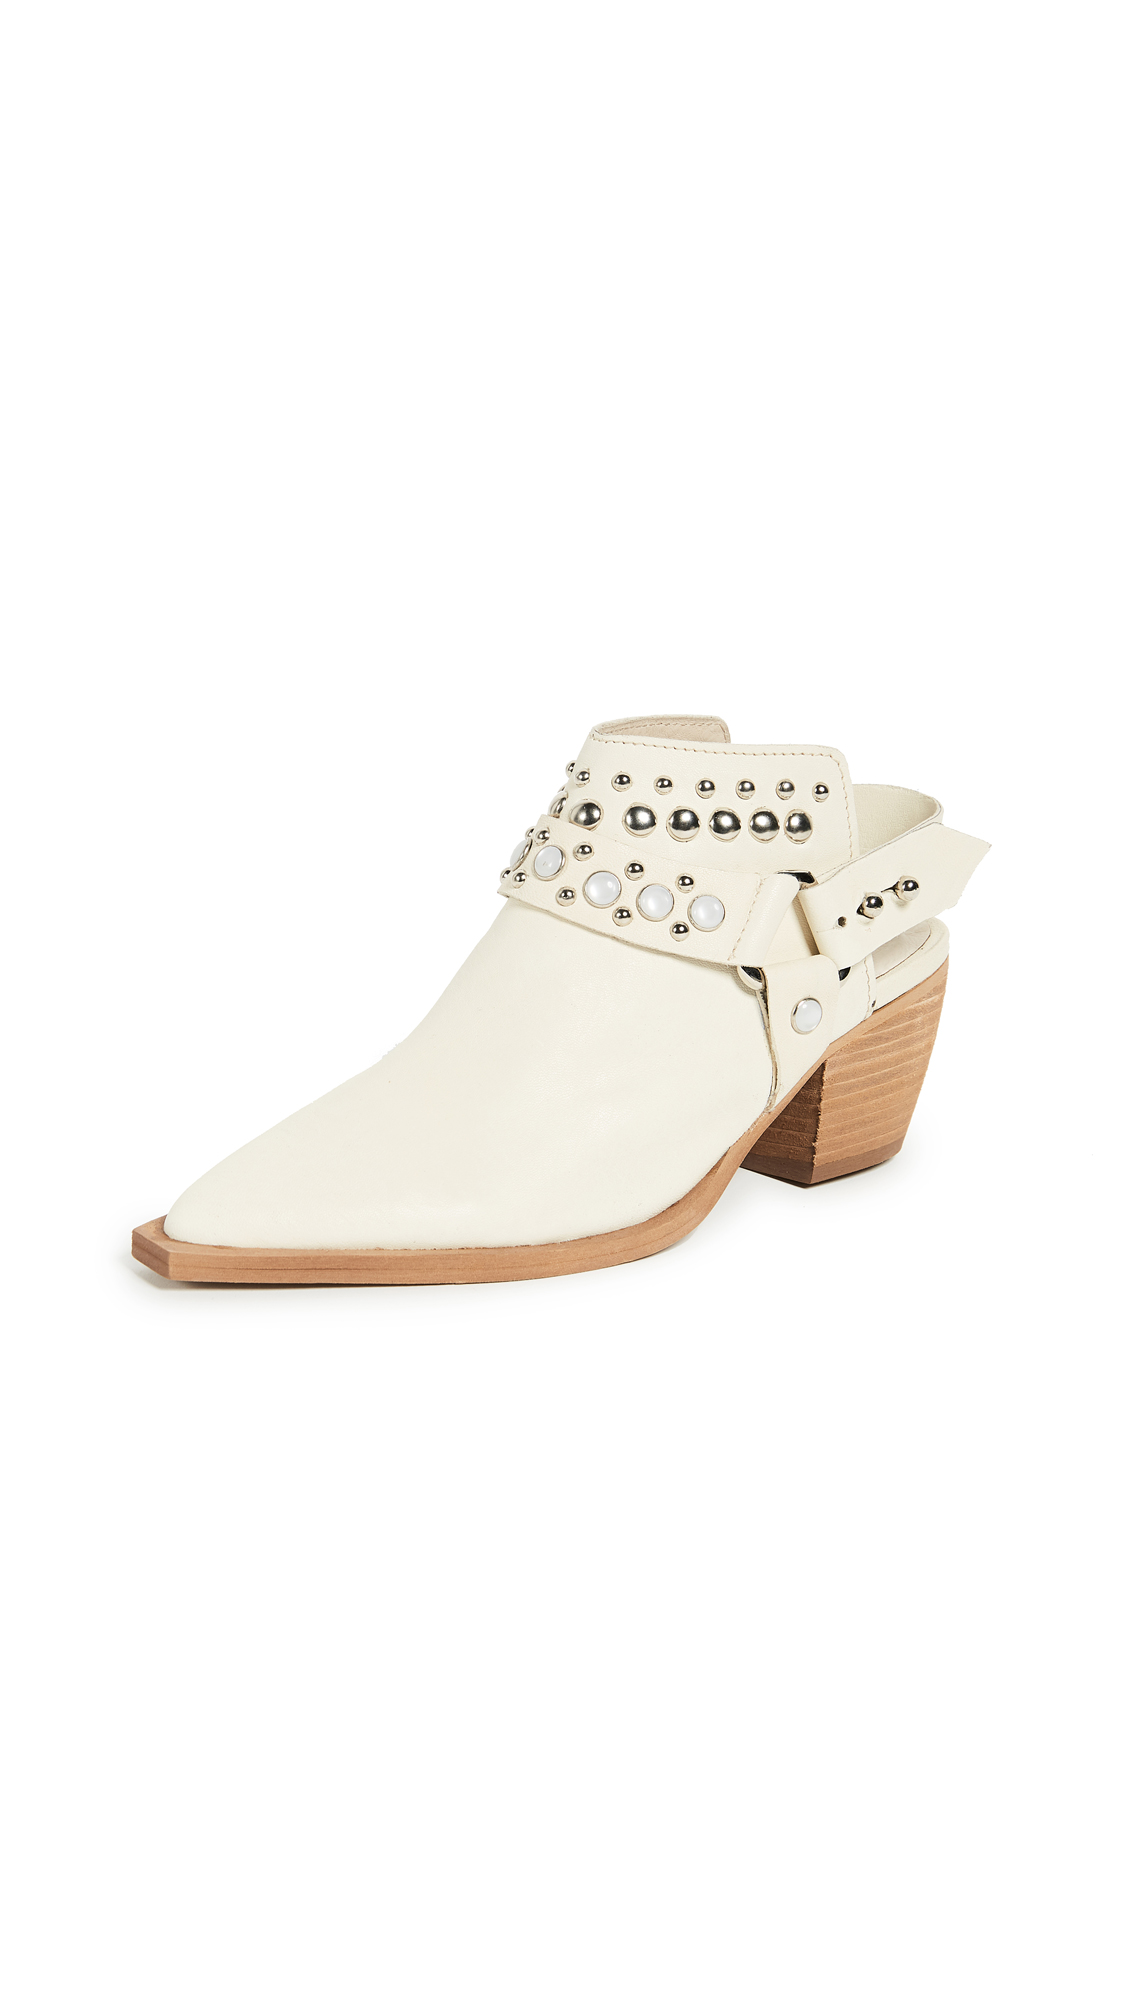 Free People Free Reigh Shoot Boots - Ivory